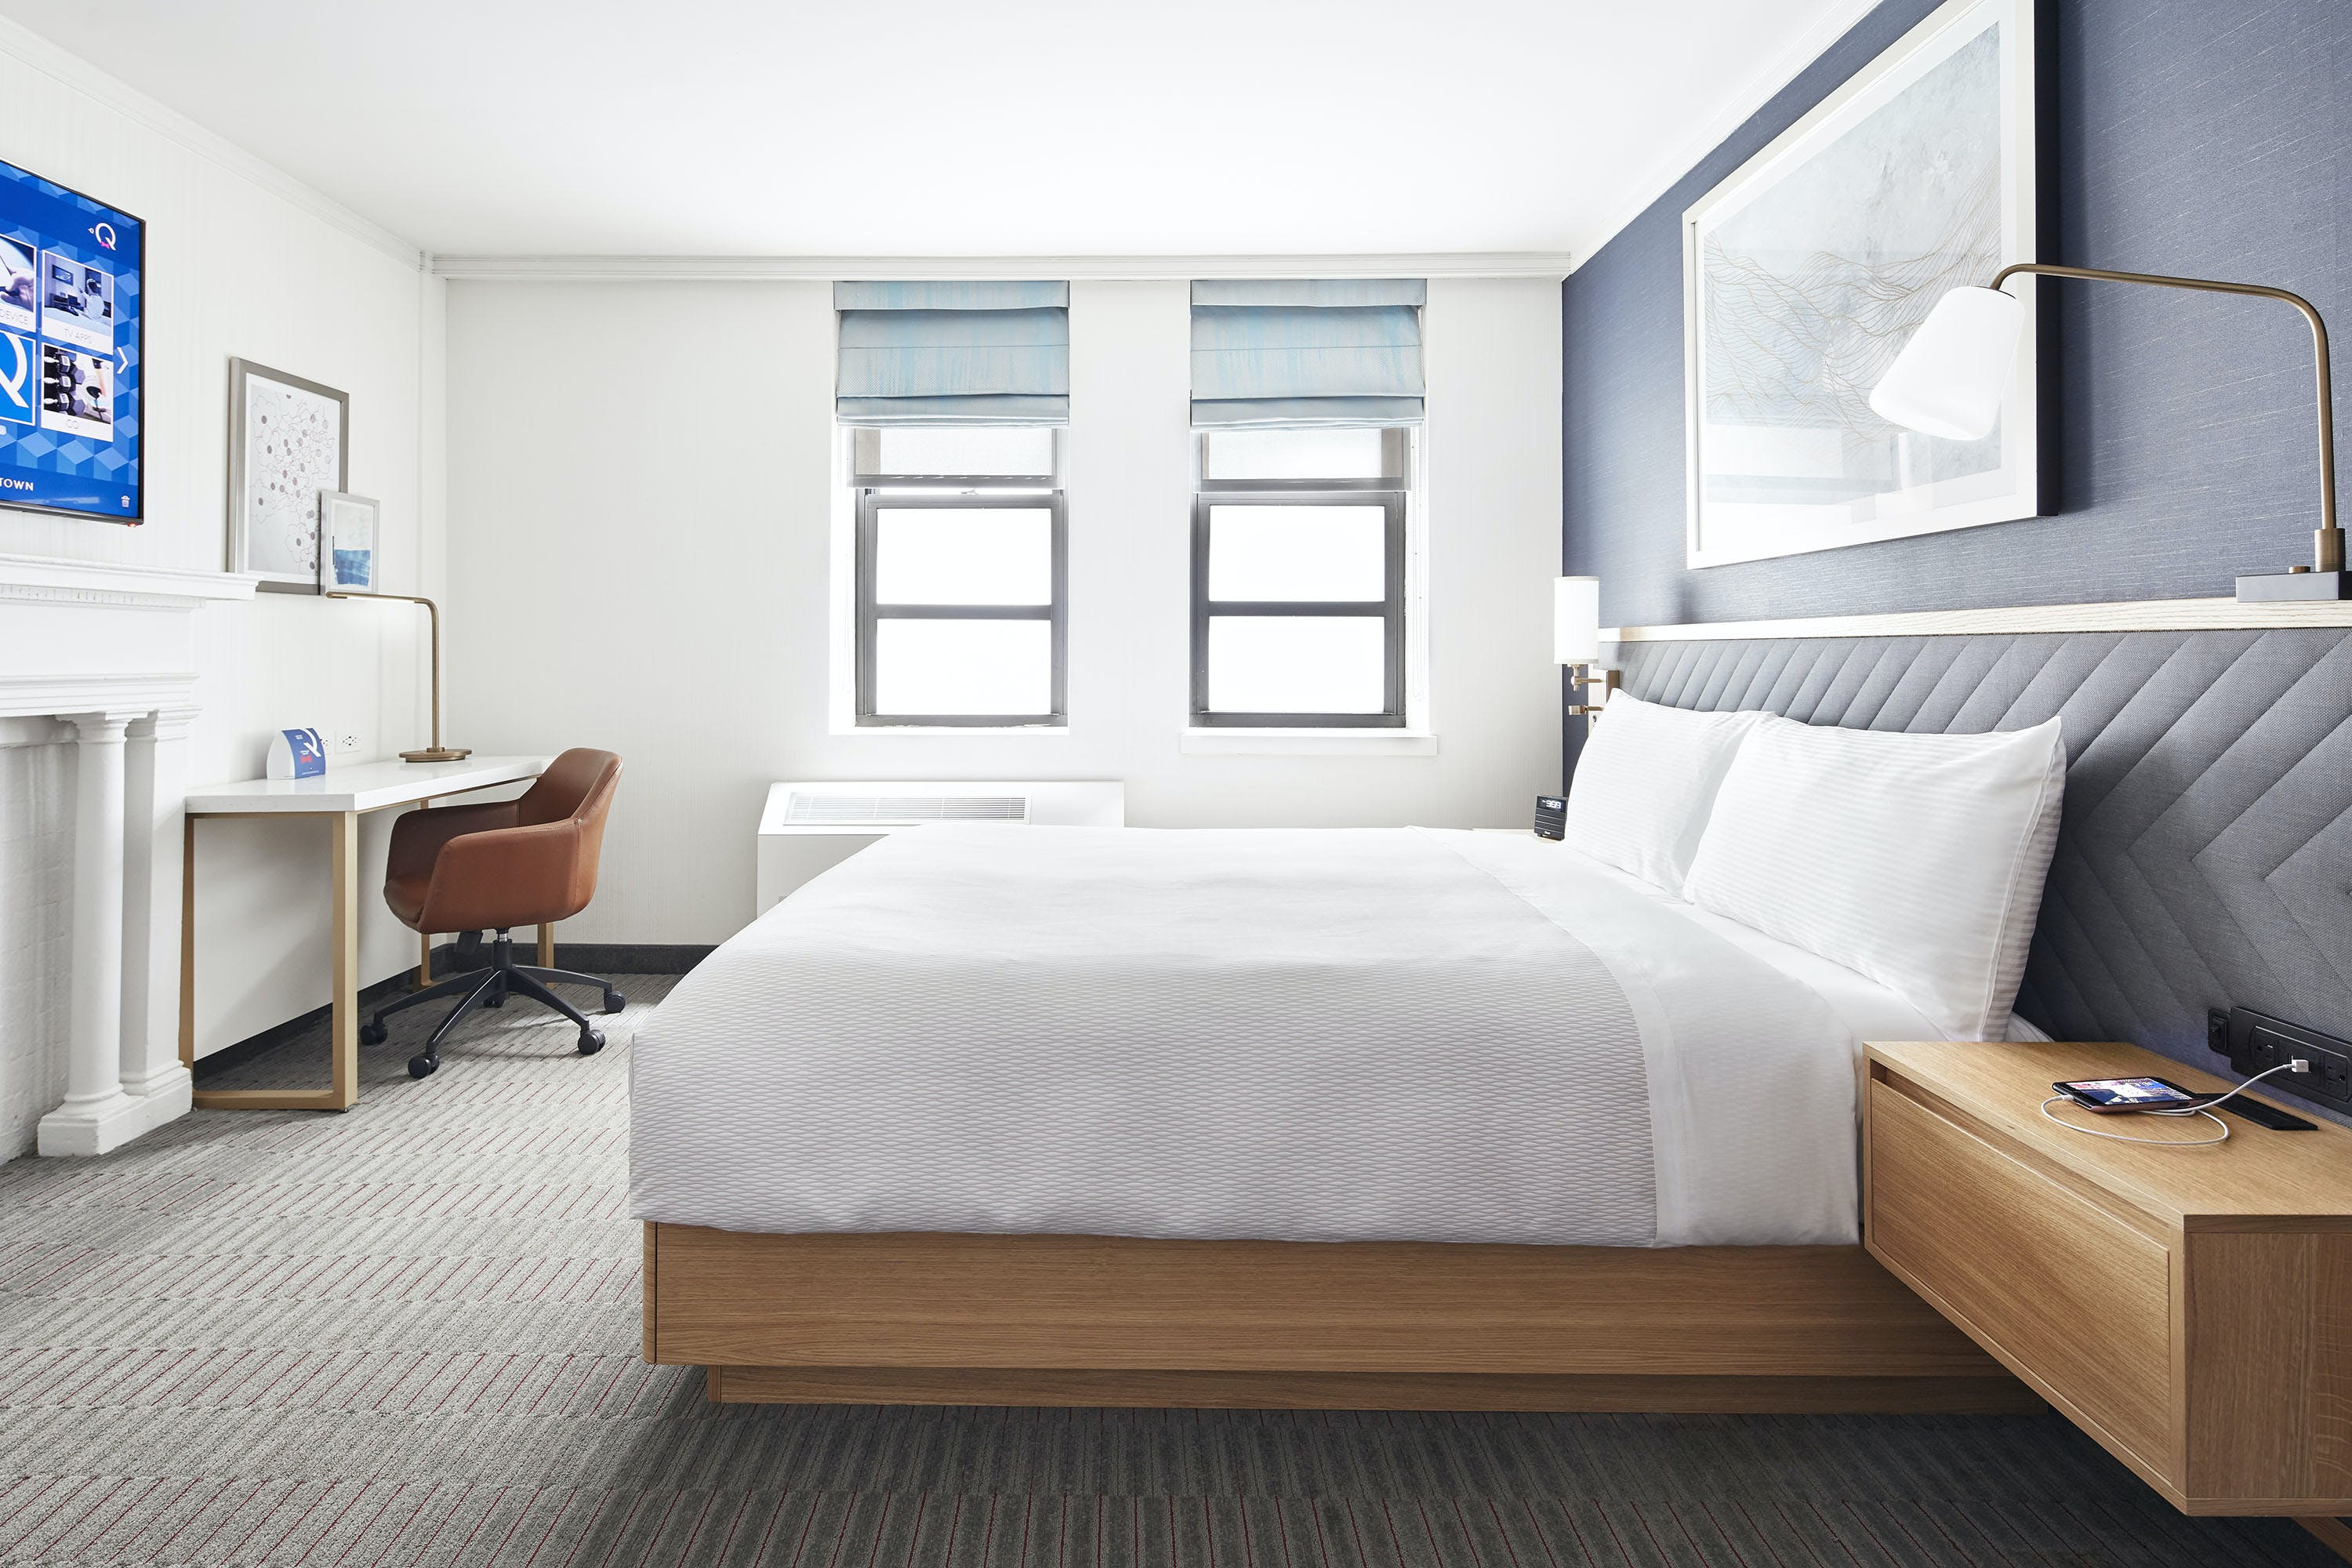 Times Square Deluxe Hotel Room